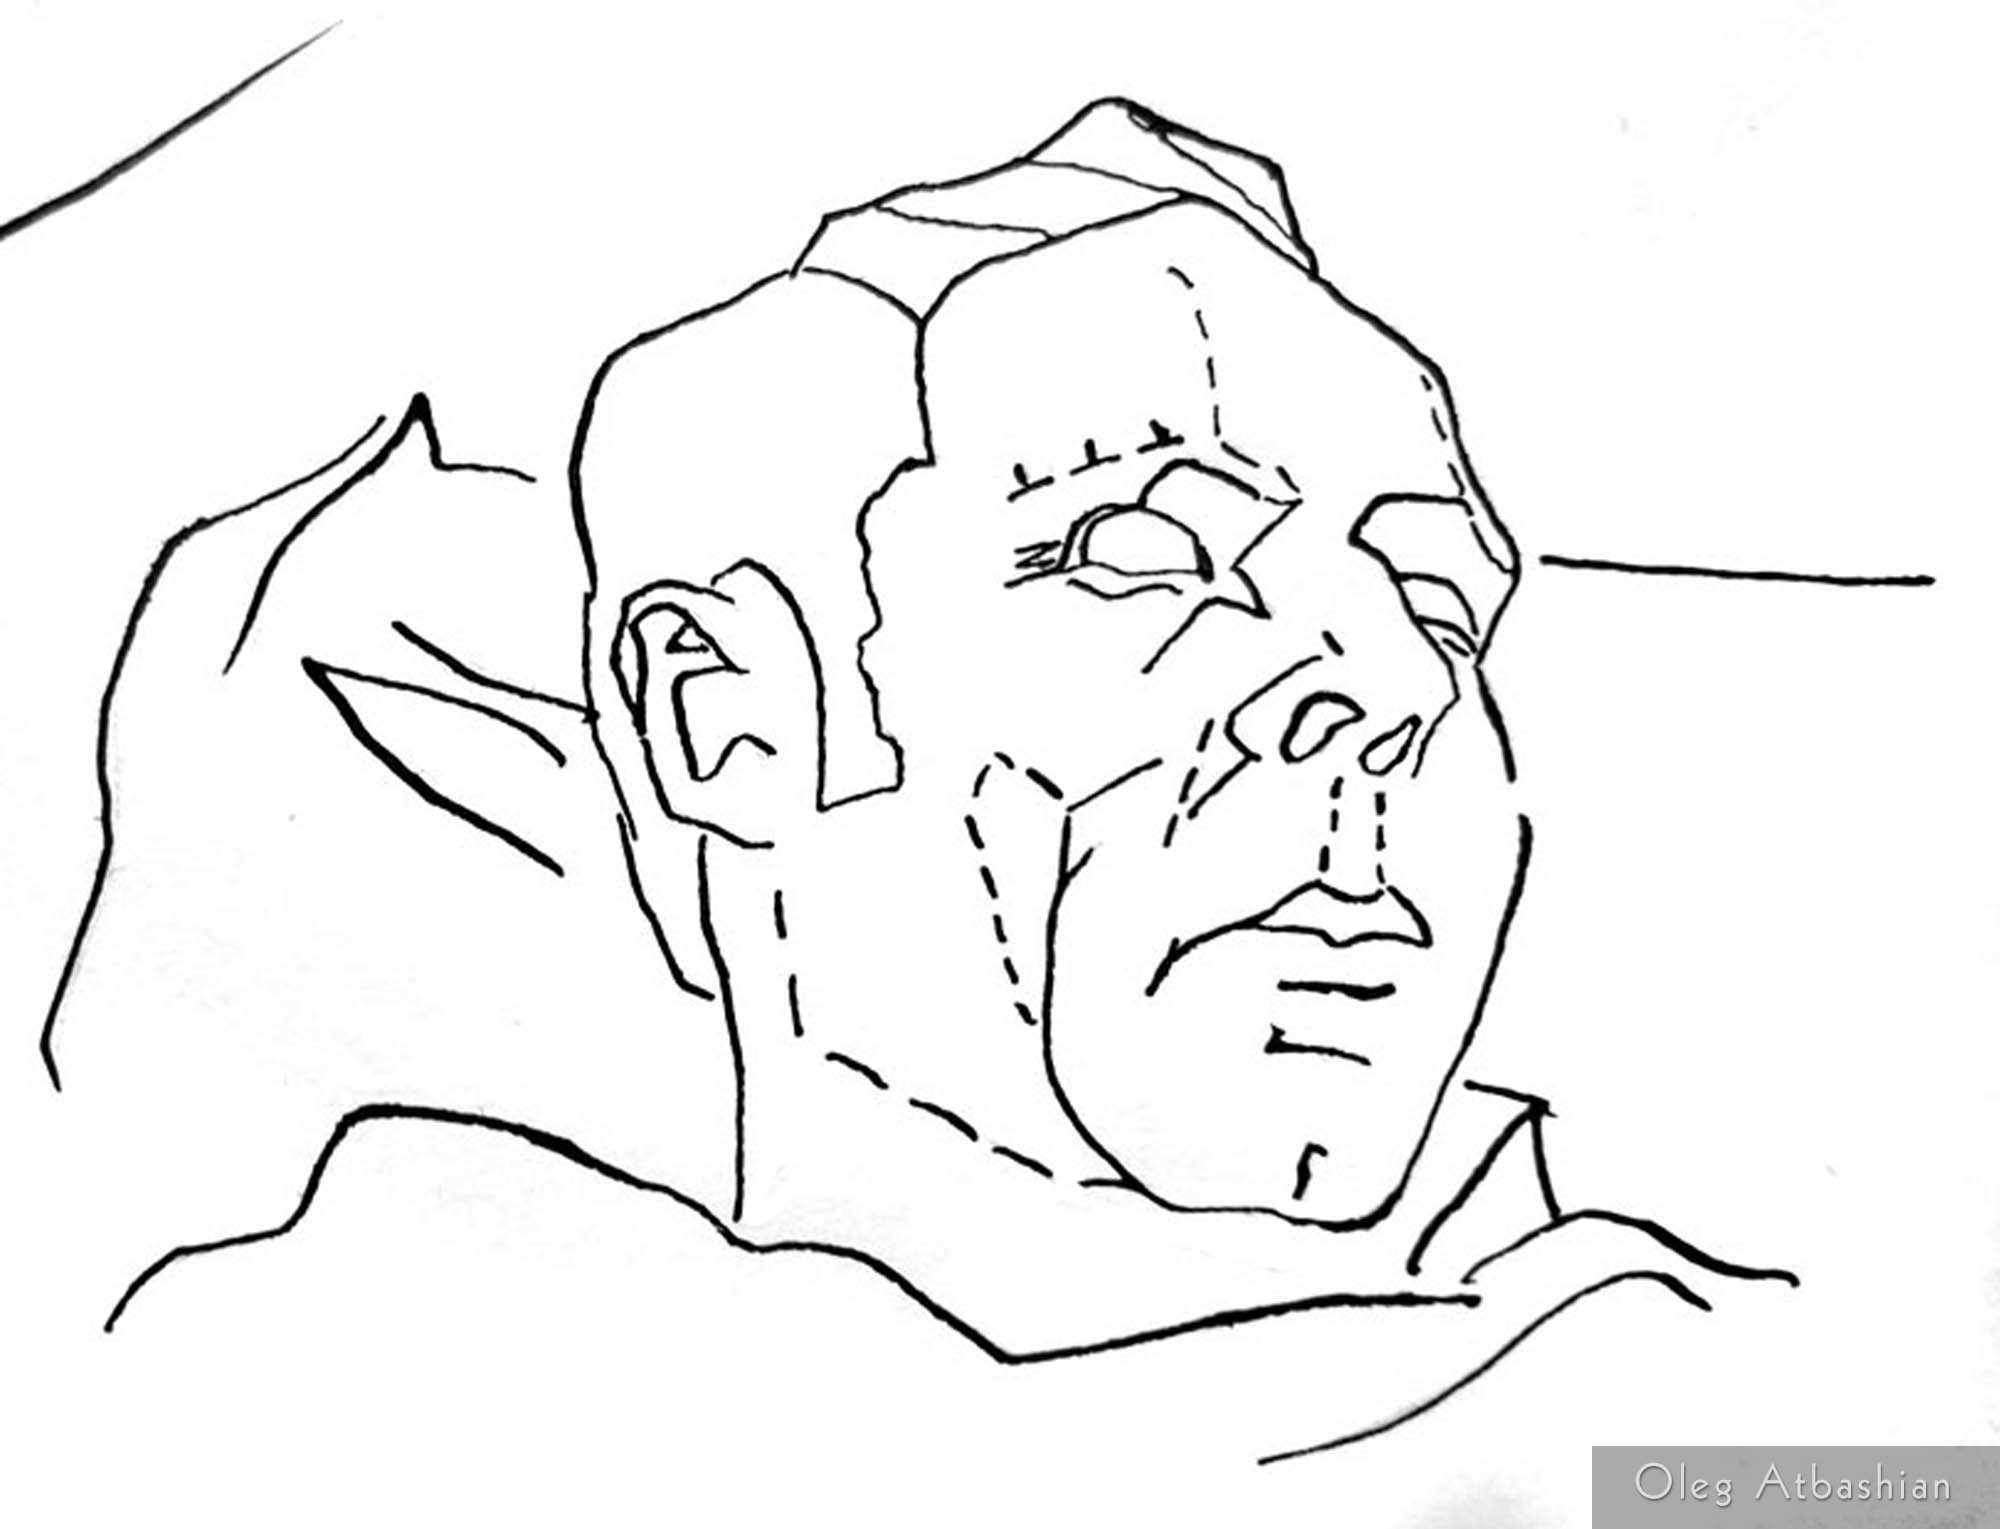 Drawing Under the Influence: Sleeping Man